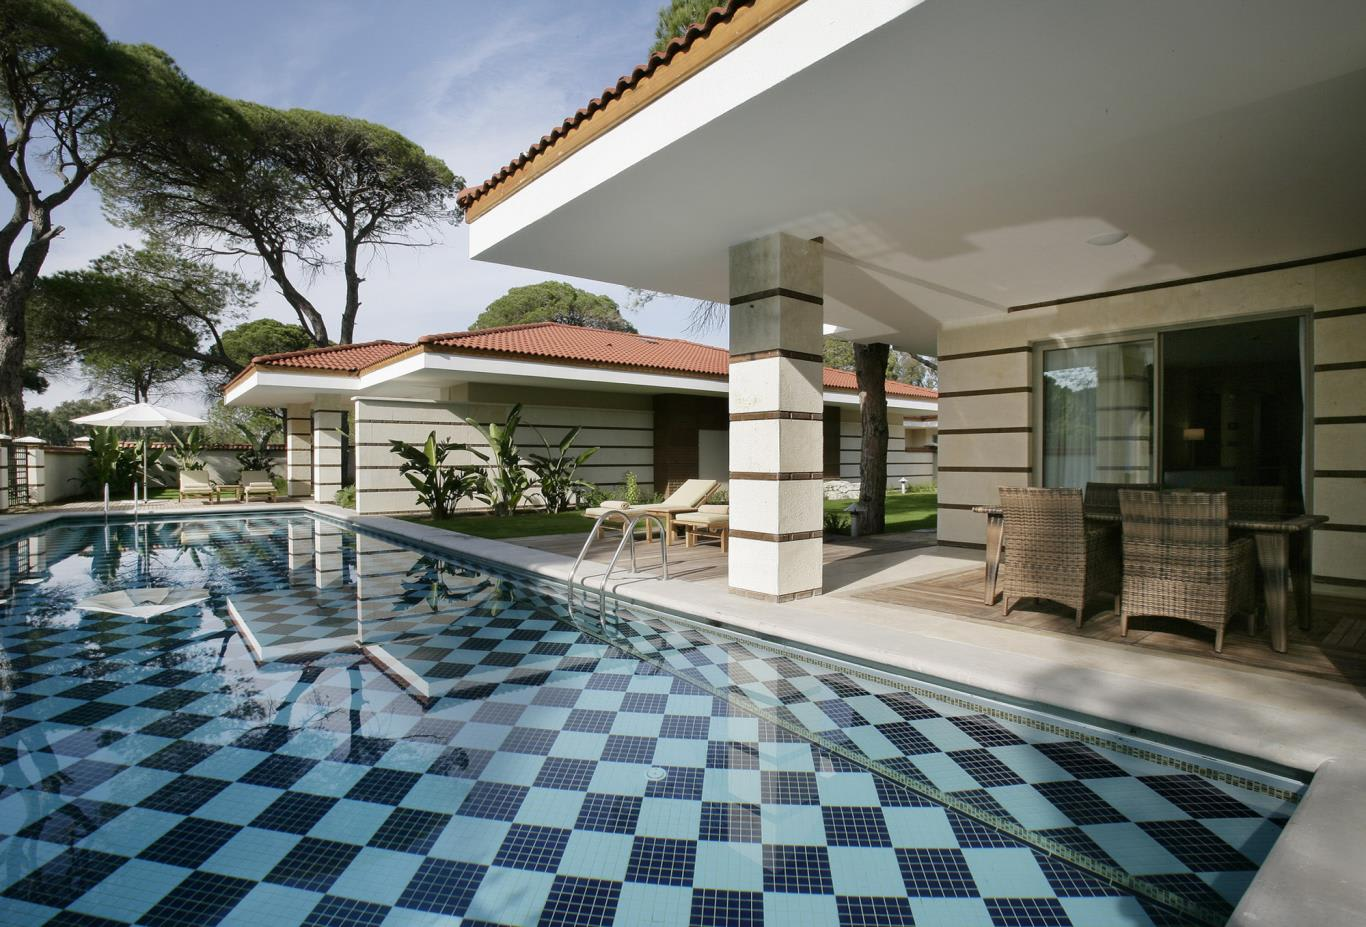 Royal golf villa pool